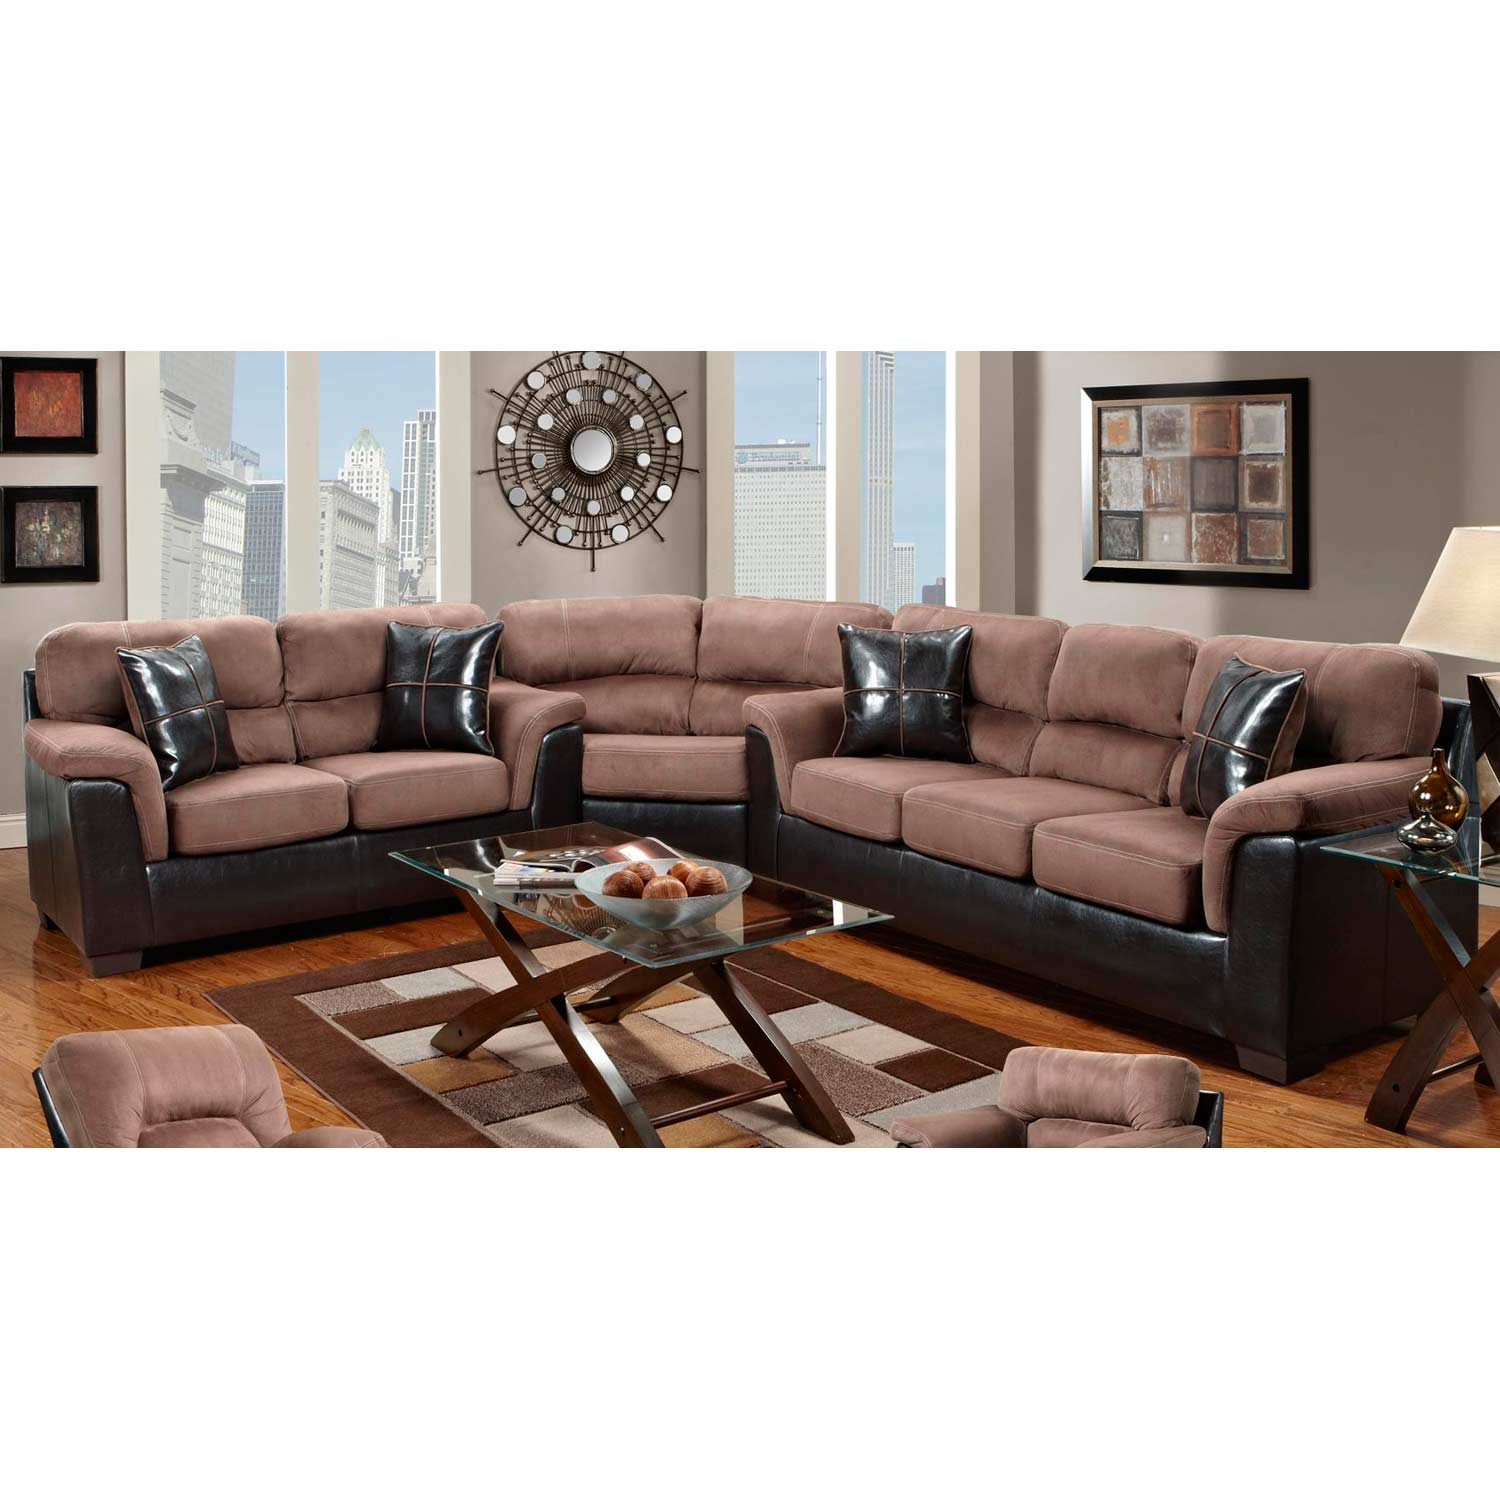 Laredo Sofa And Loveseat: Annabelle Two-Toned Sectional Sofa